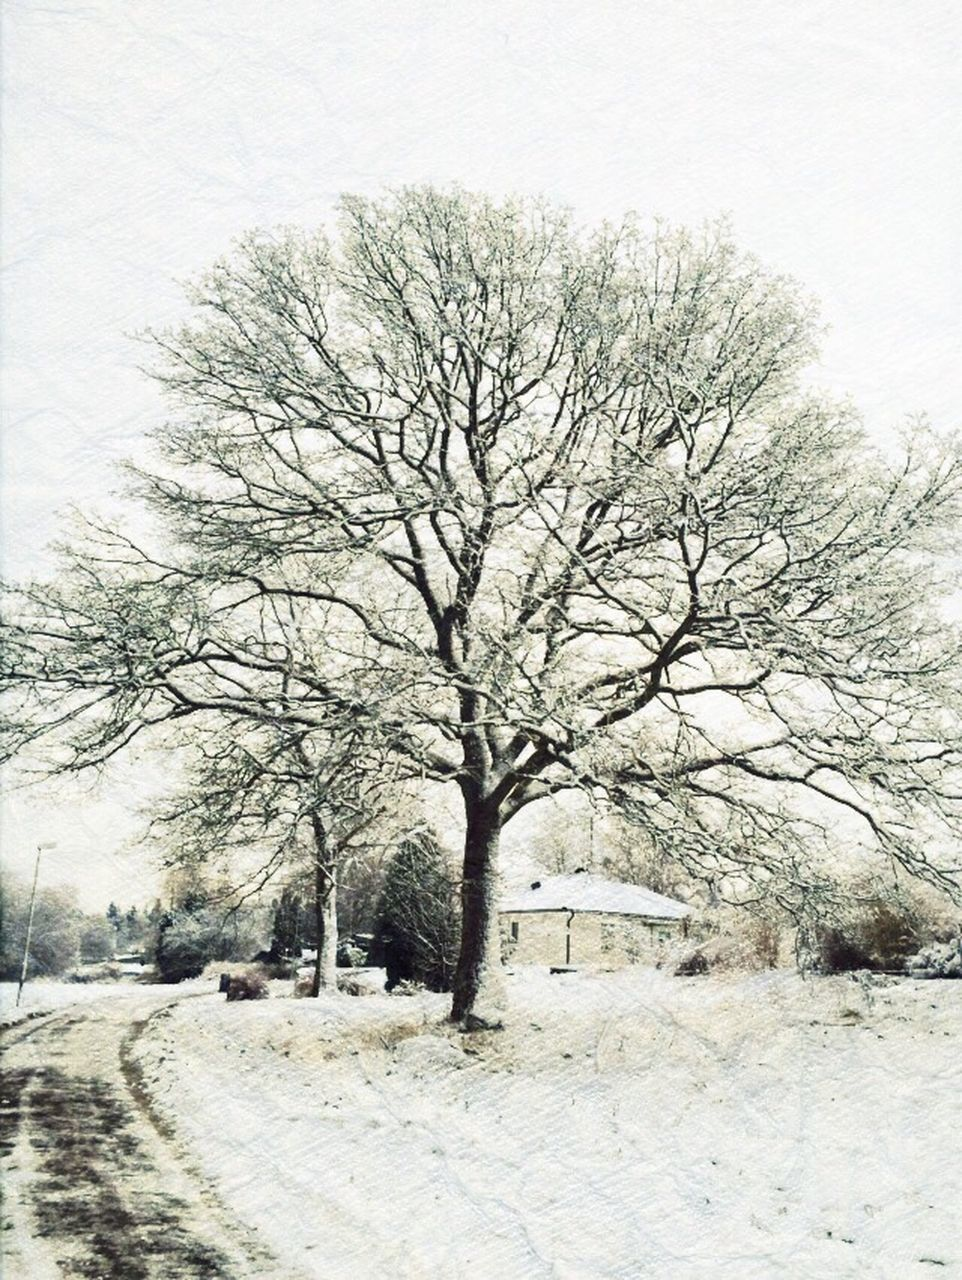 Trees In Snow Covered Park